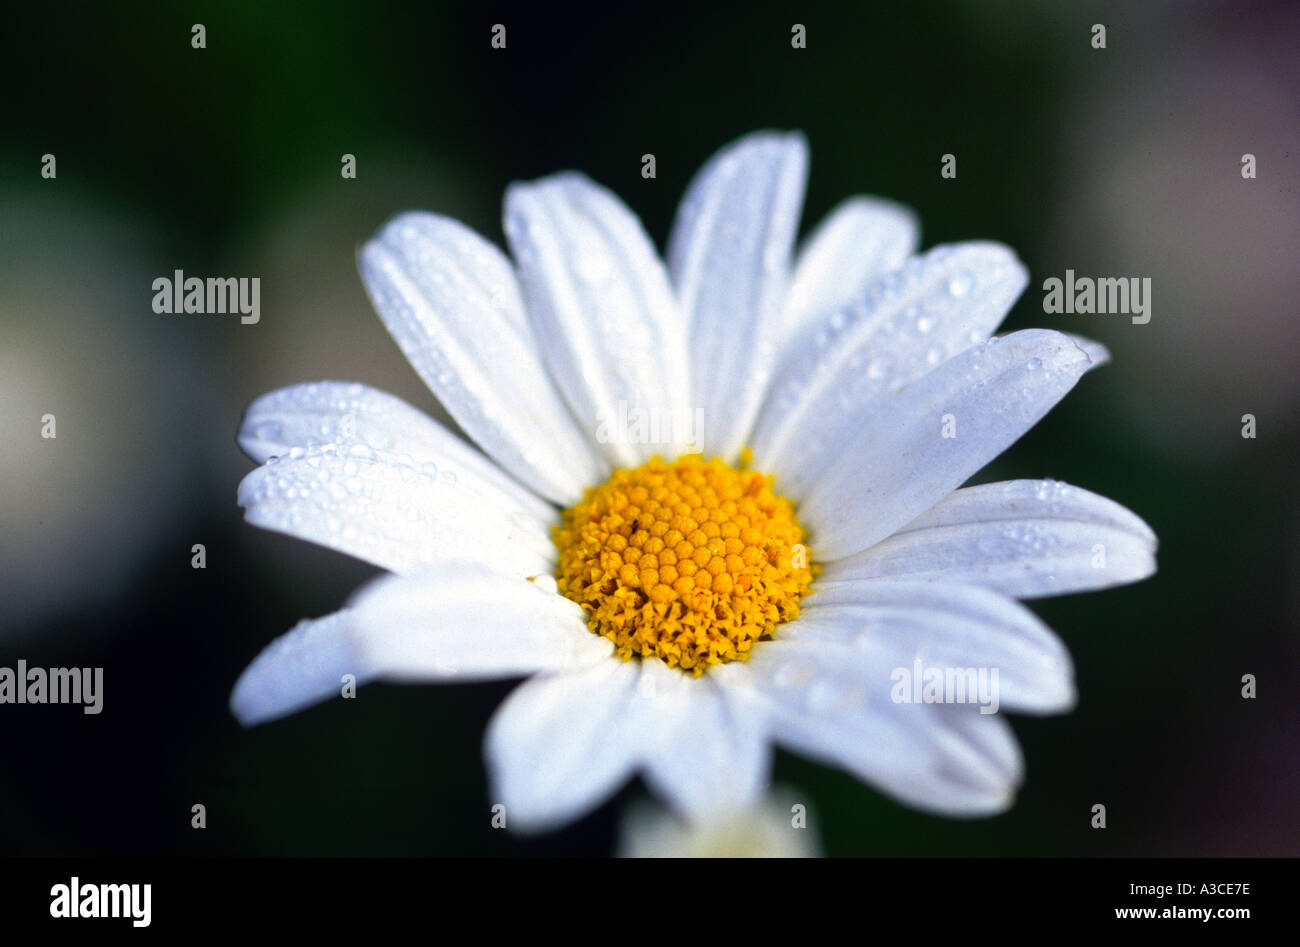 A daisy type flower stock photo royalty free image 249470 alamy a daisy type flower dhlflorist Images